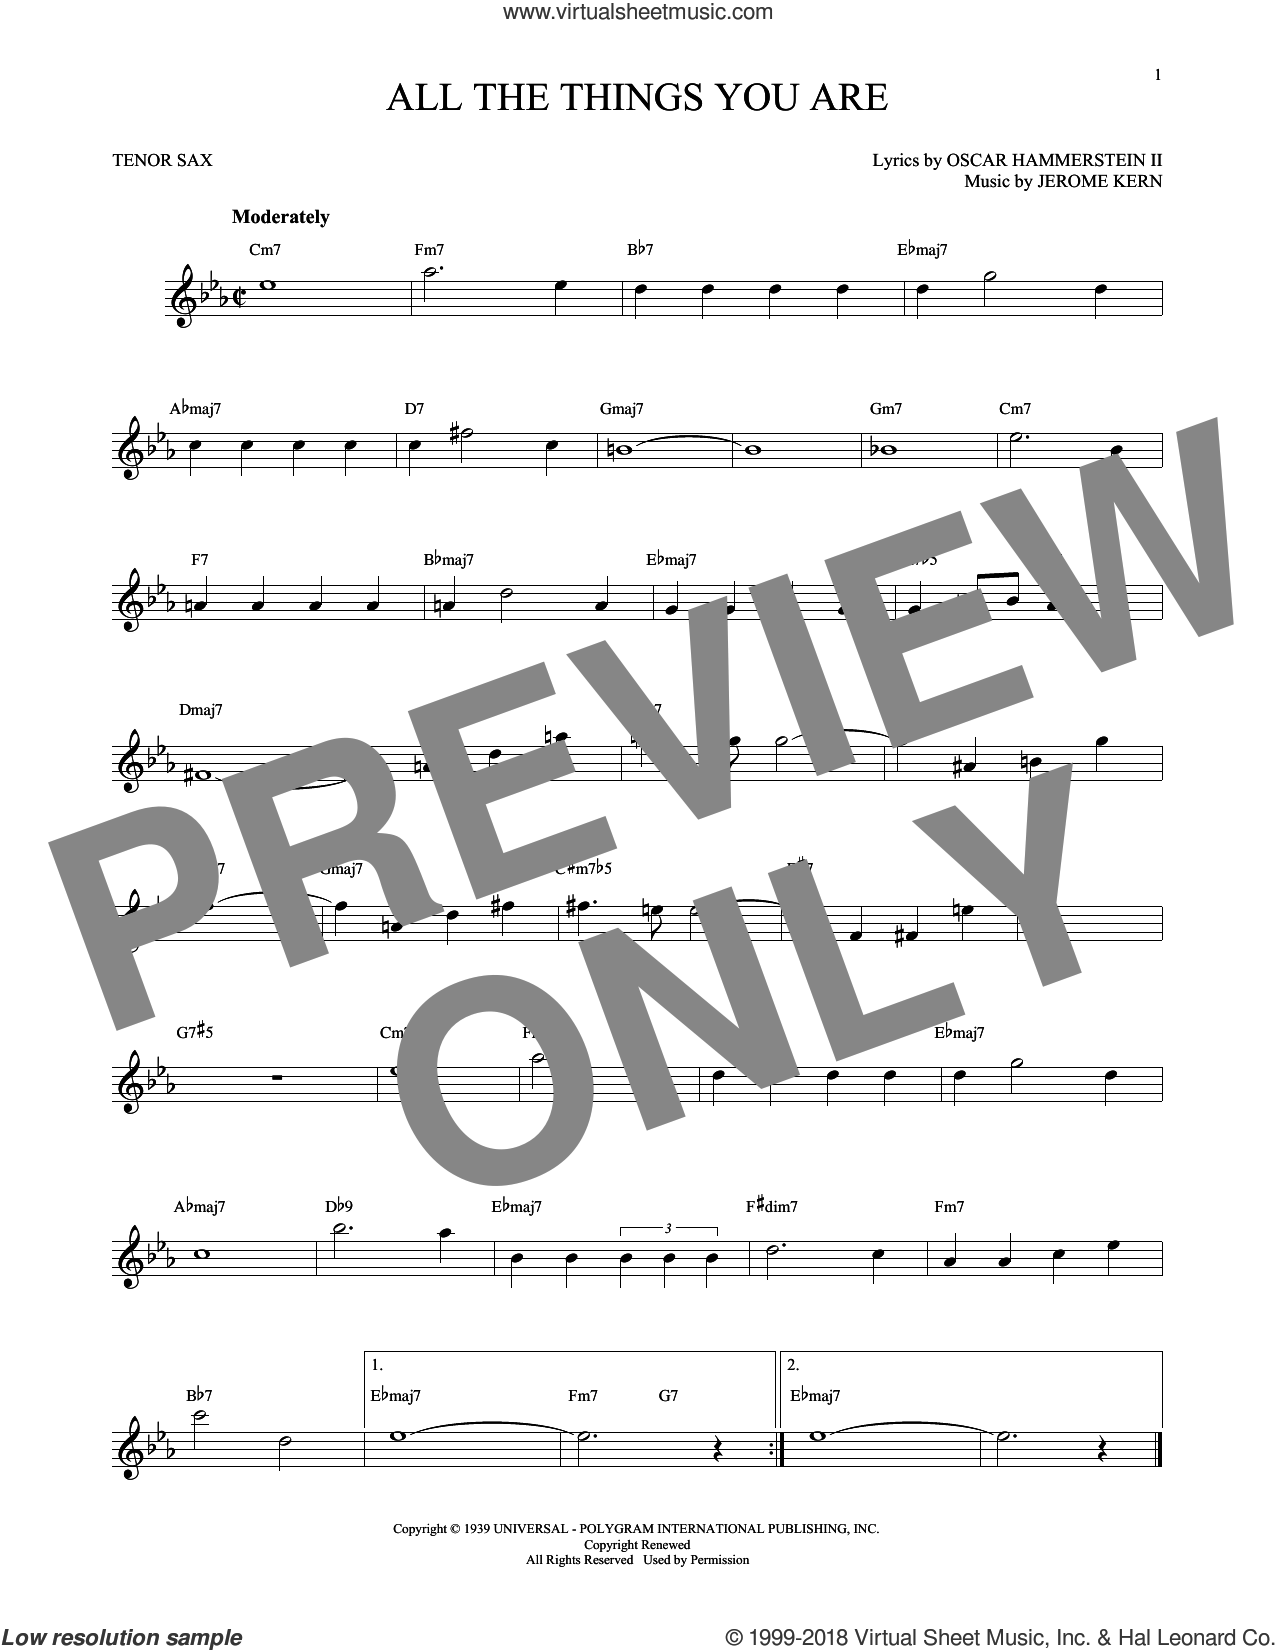 All The Things You Are sheet music for tenor saxophone solo by Oscar II Hammerstein, Jack Leonard with Tommy Dorsey Orchestra and Jerome Kern, intermediate skill level